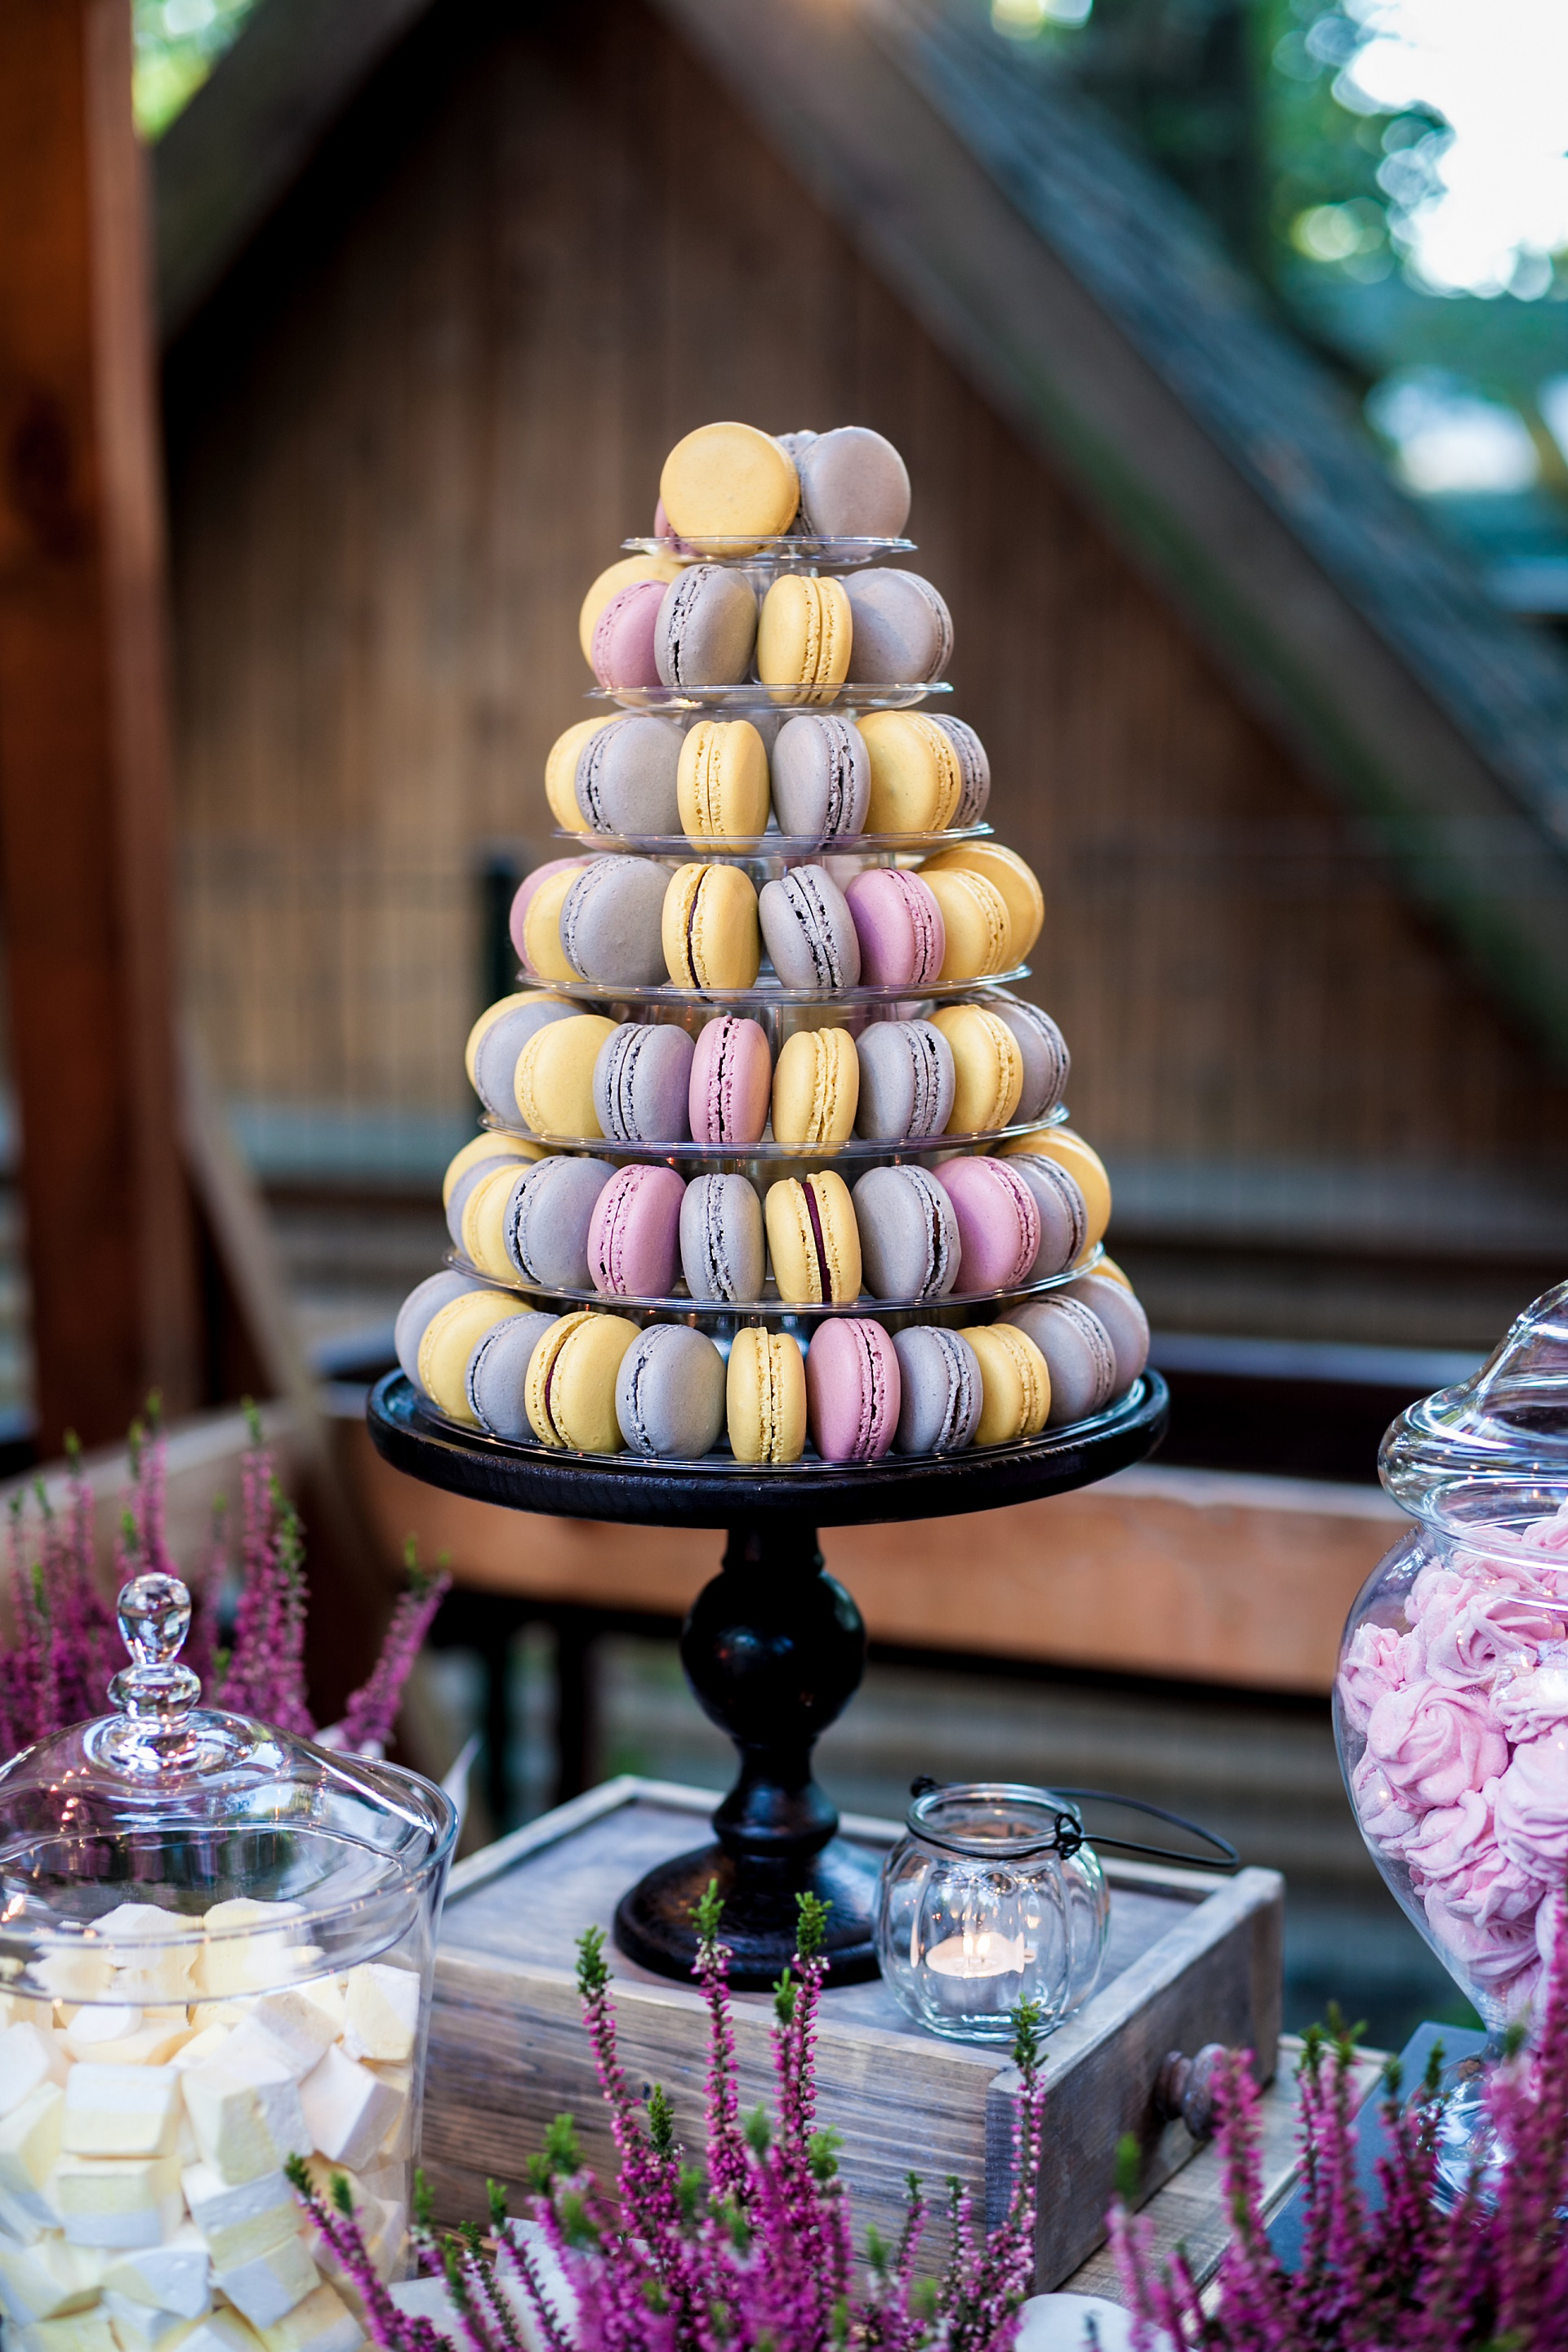 Macaron tower instead of a conventional birthday cake.